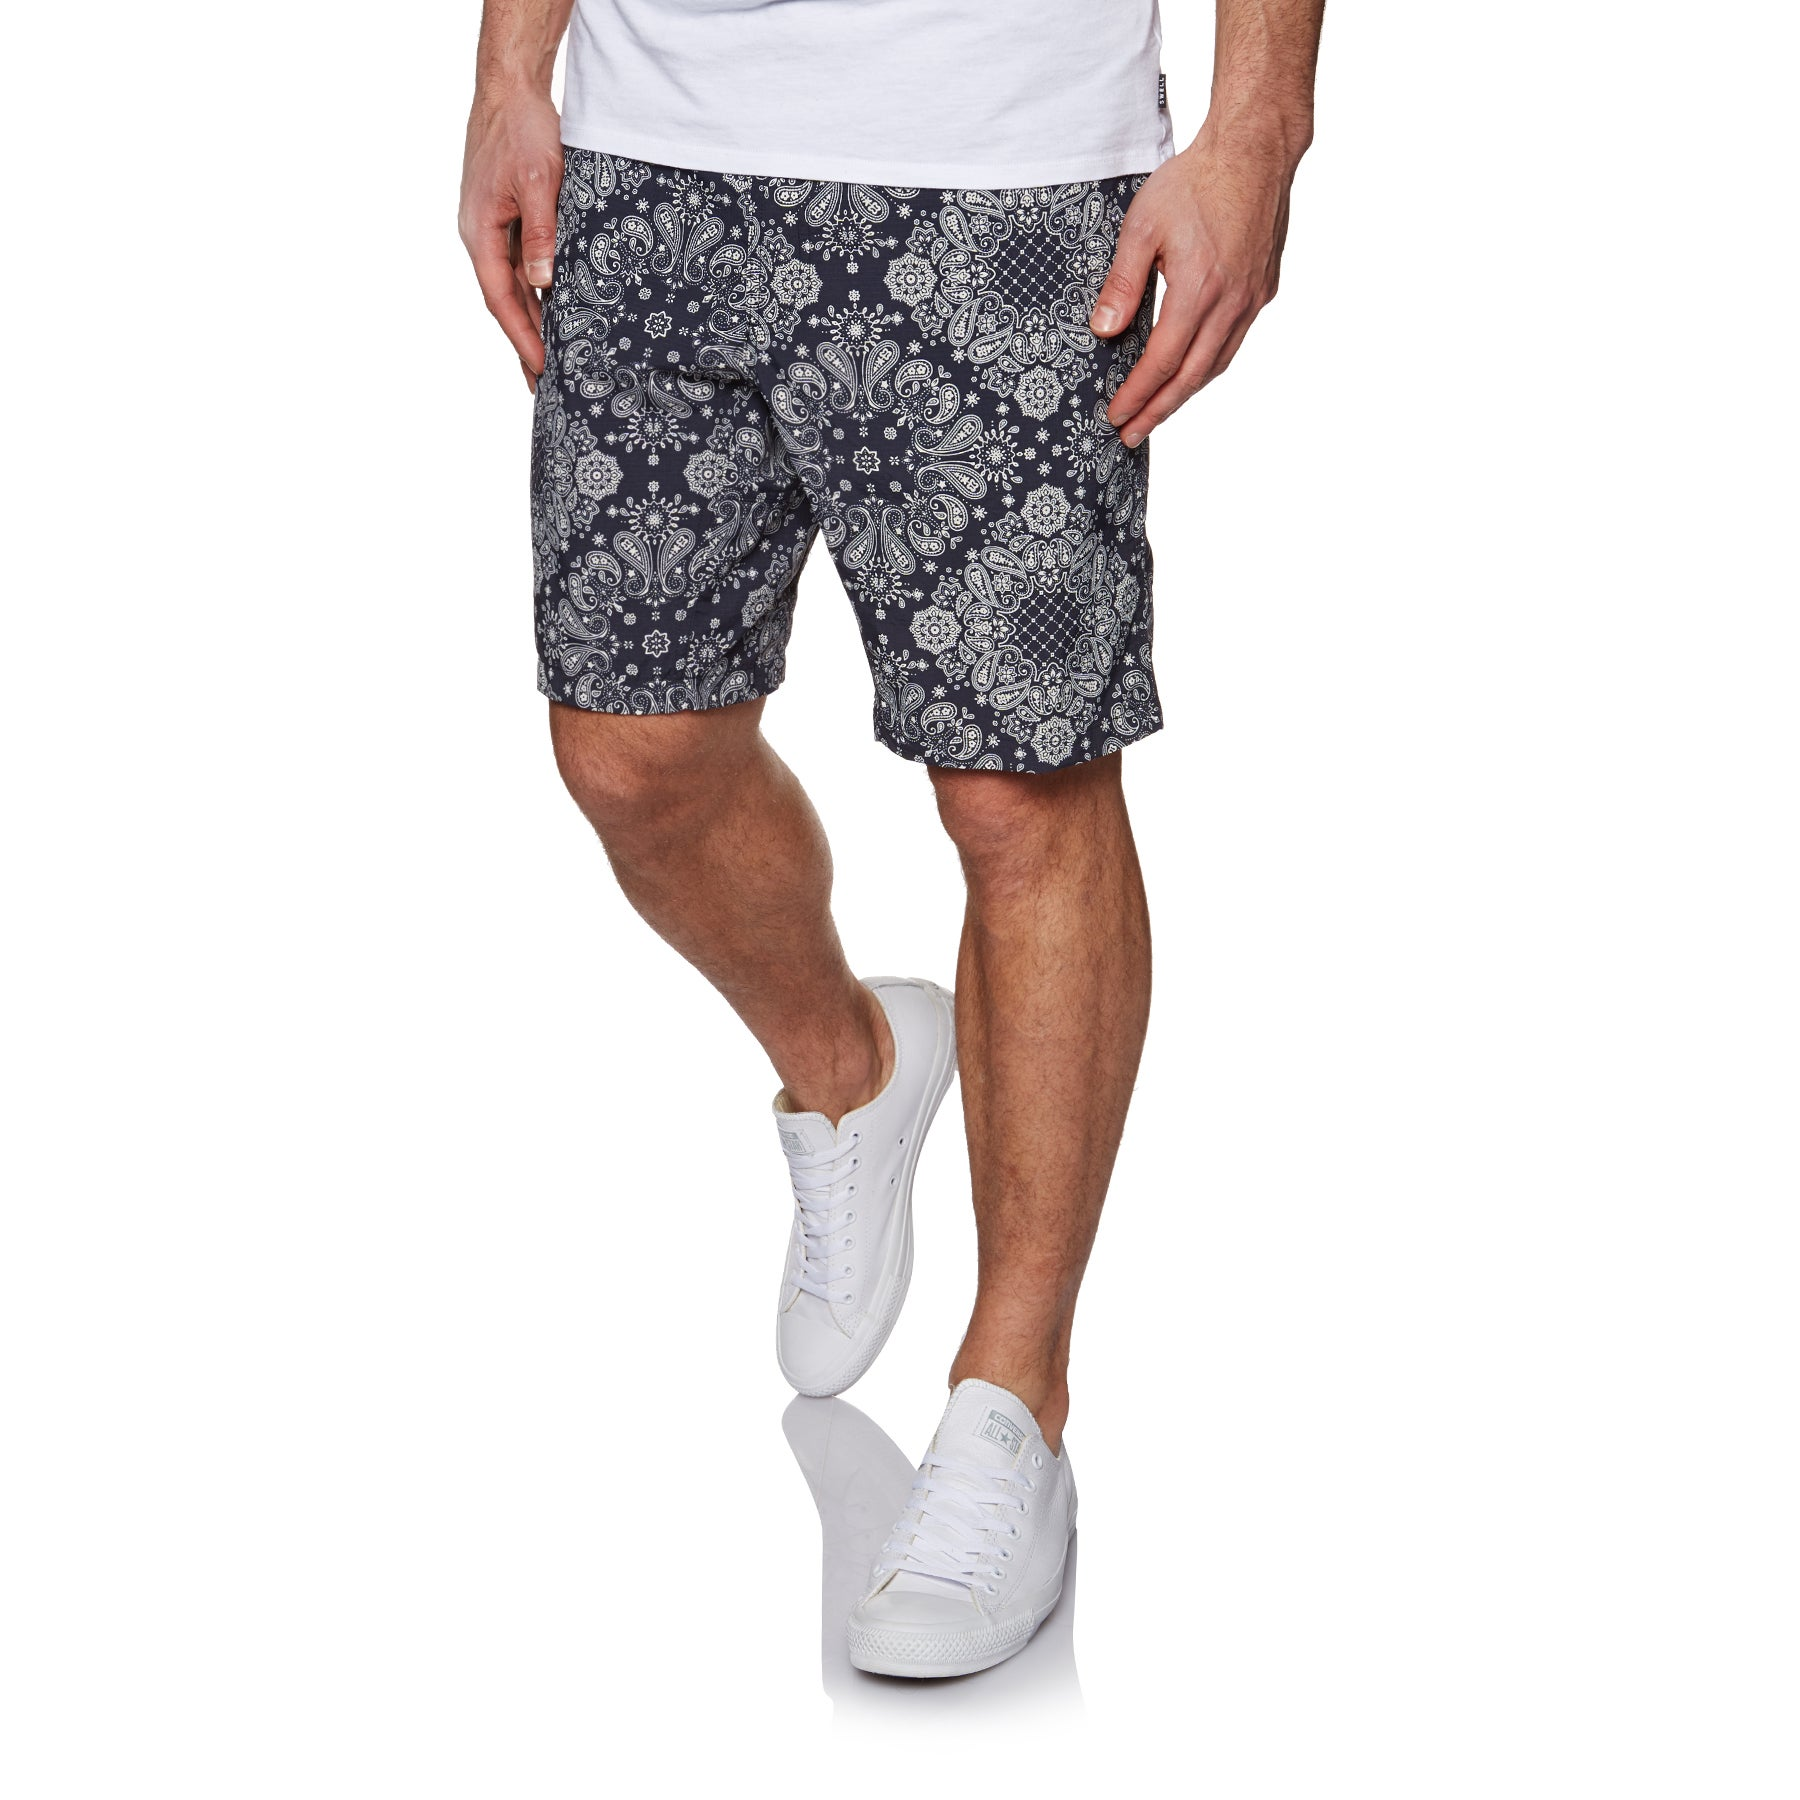 Burton Clingman Walk Shorts - Mood Indigo Bandana